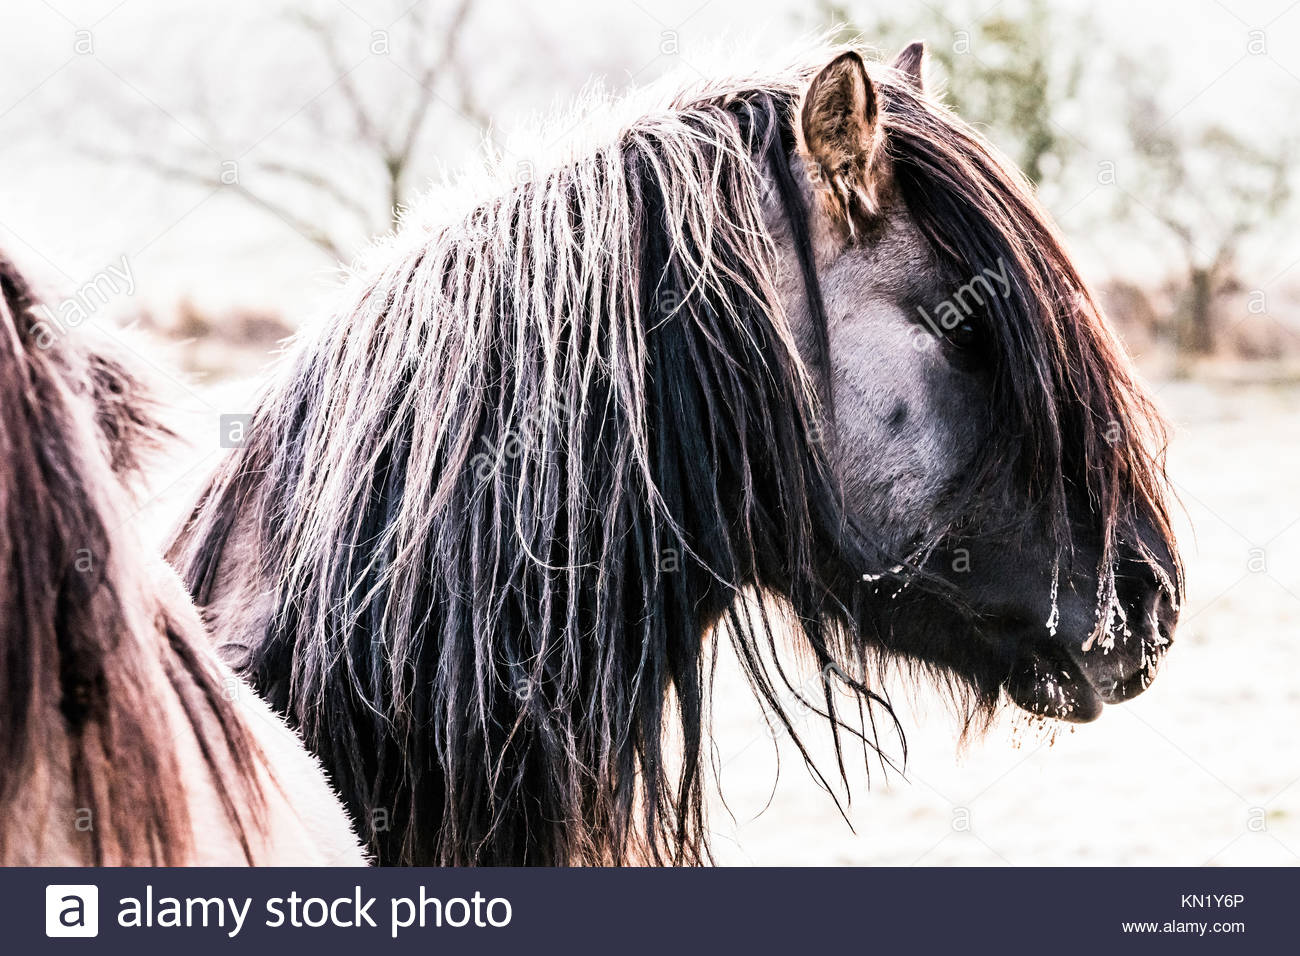 Cessford Farm, Morebattle Kelso, Scottish Borders, UK. 10th December 2017. Highland ponies at dawn are unpeturbed Stock Photo